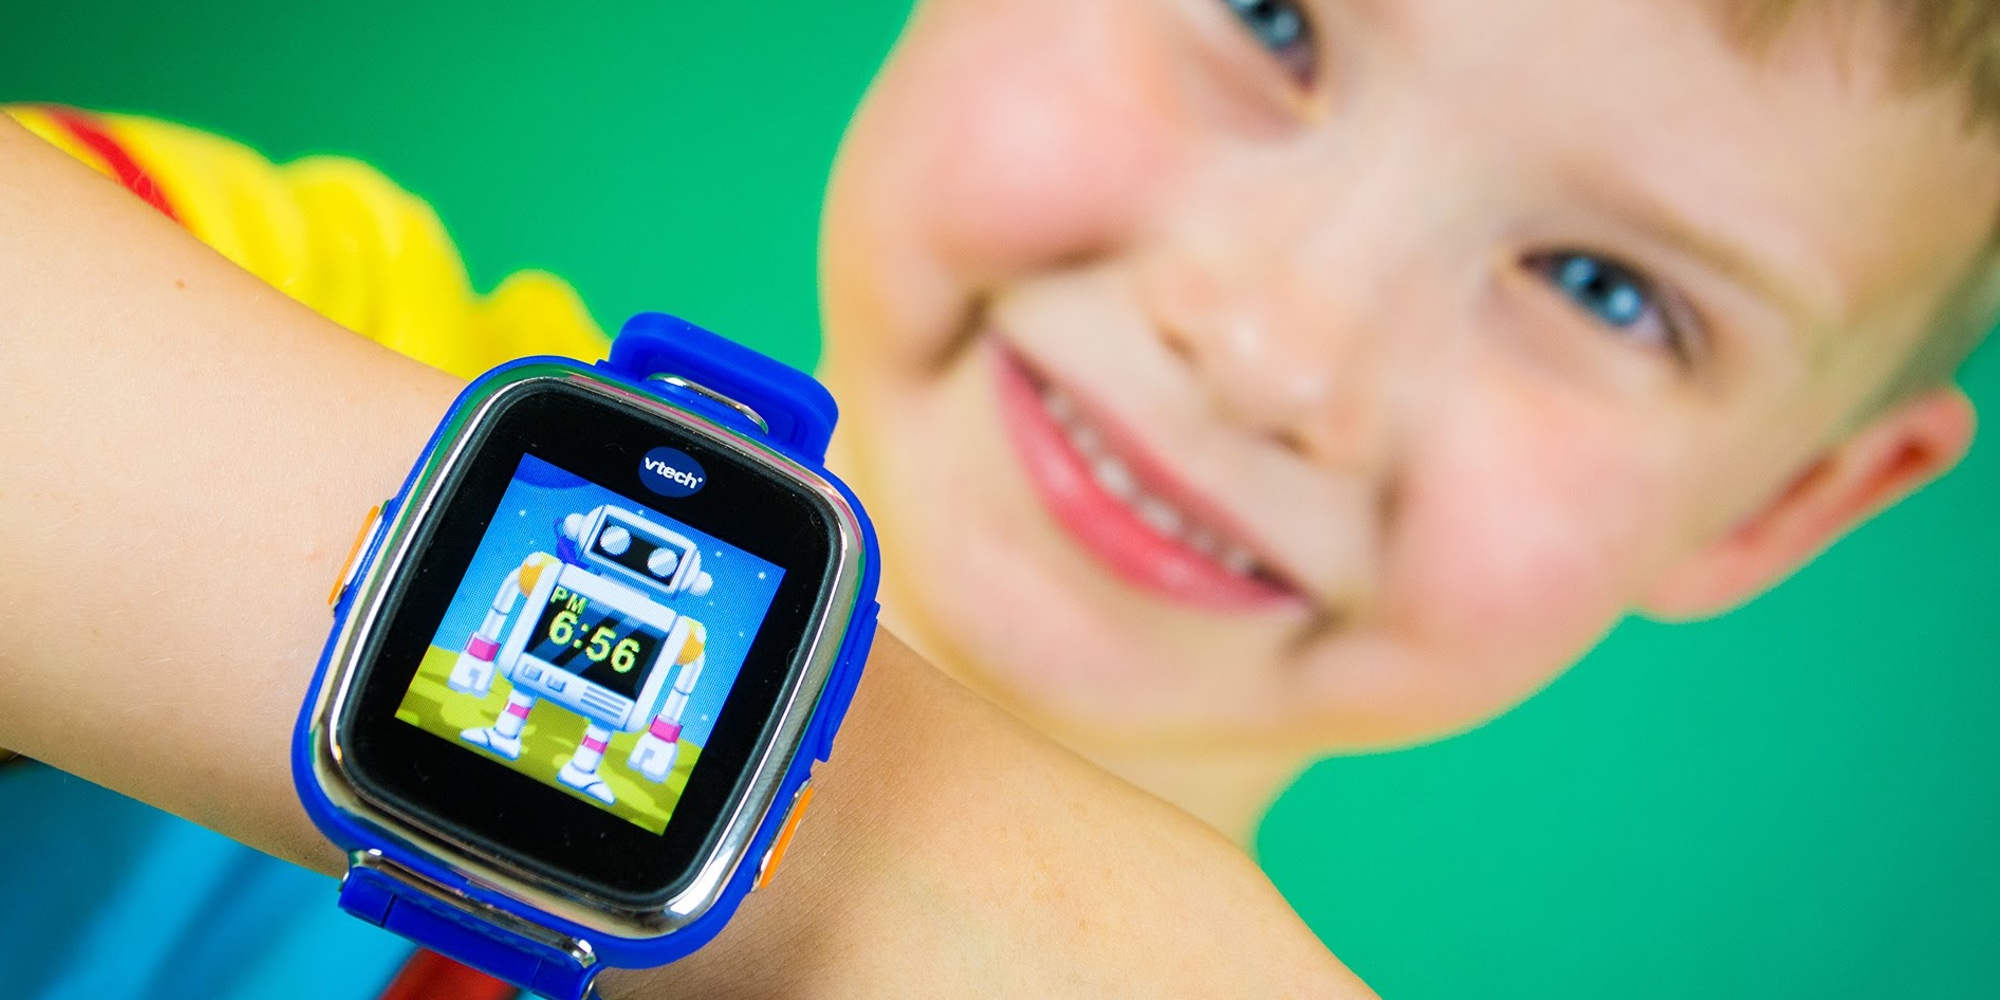 VTech Kidizoom Smartwatch DX2 wins CES award for best kids' peripheral